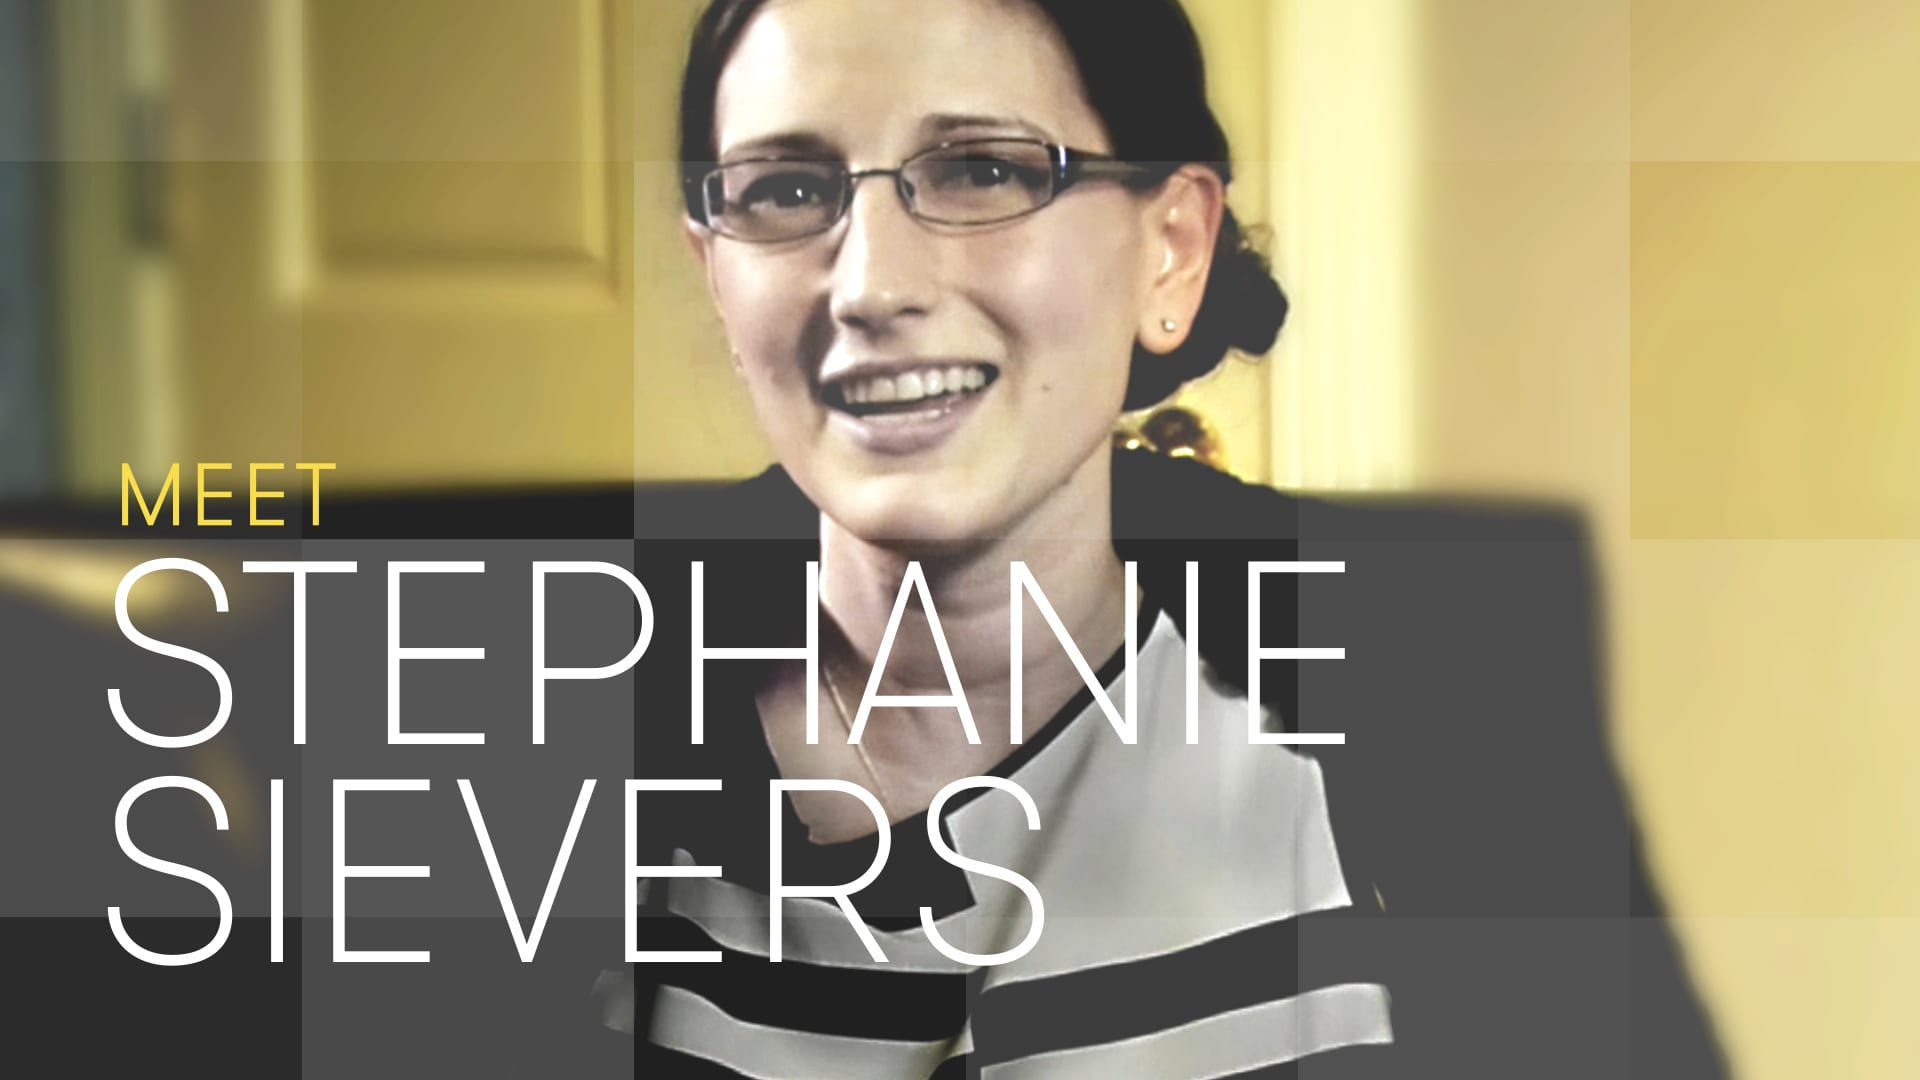 The Partner contestant Stephanie Sievers